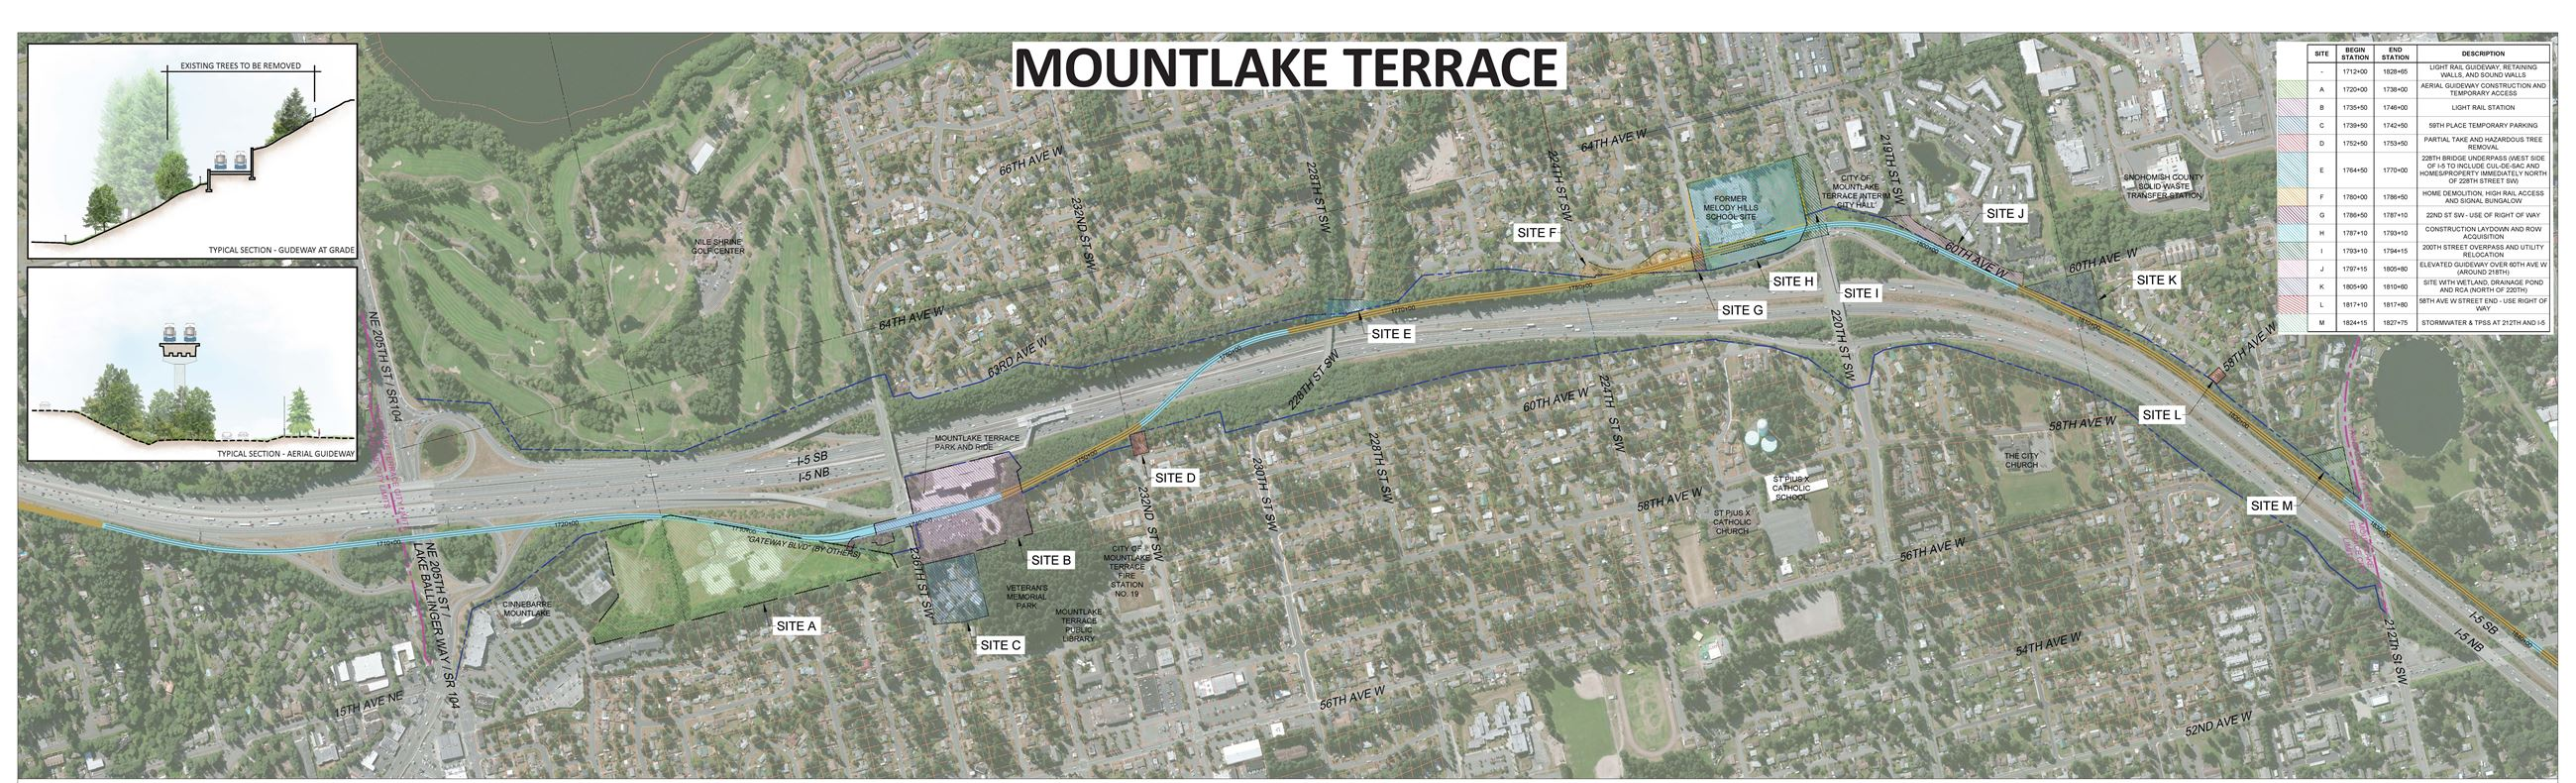 Sound Transit Guideway for Mountlake Terrace (3)